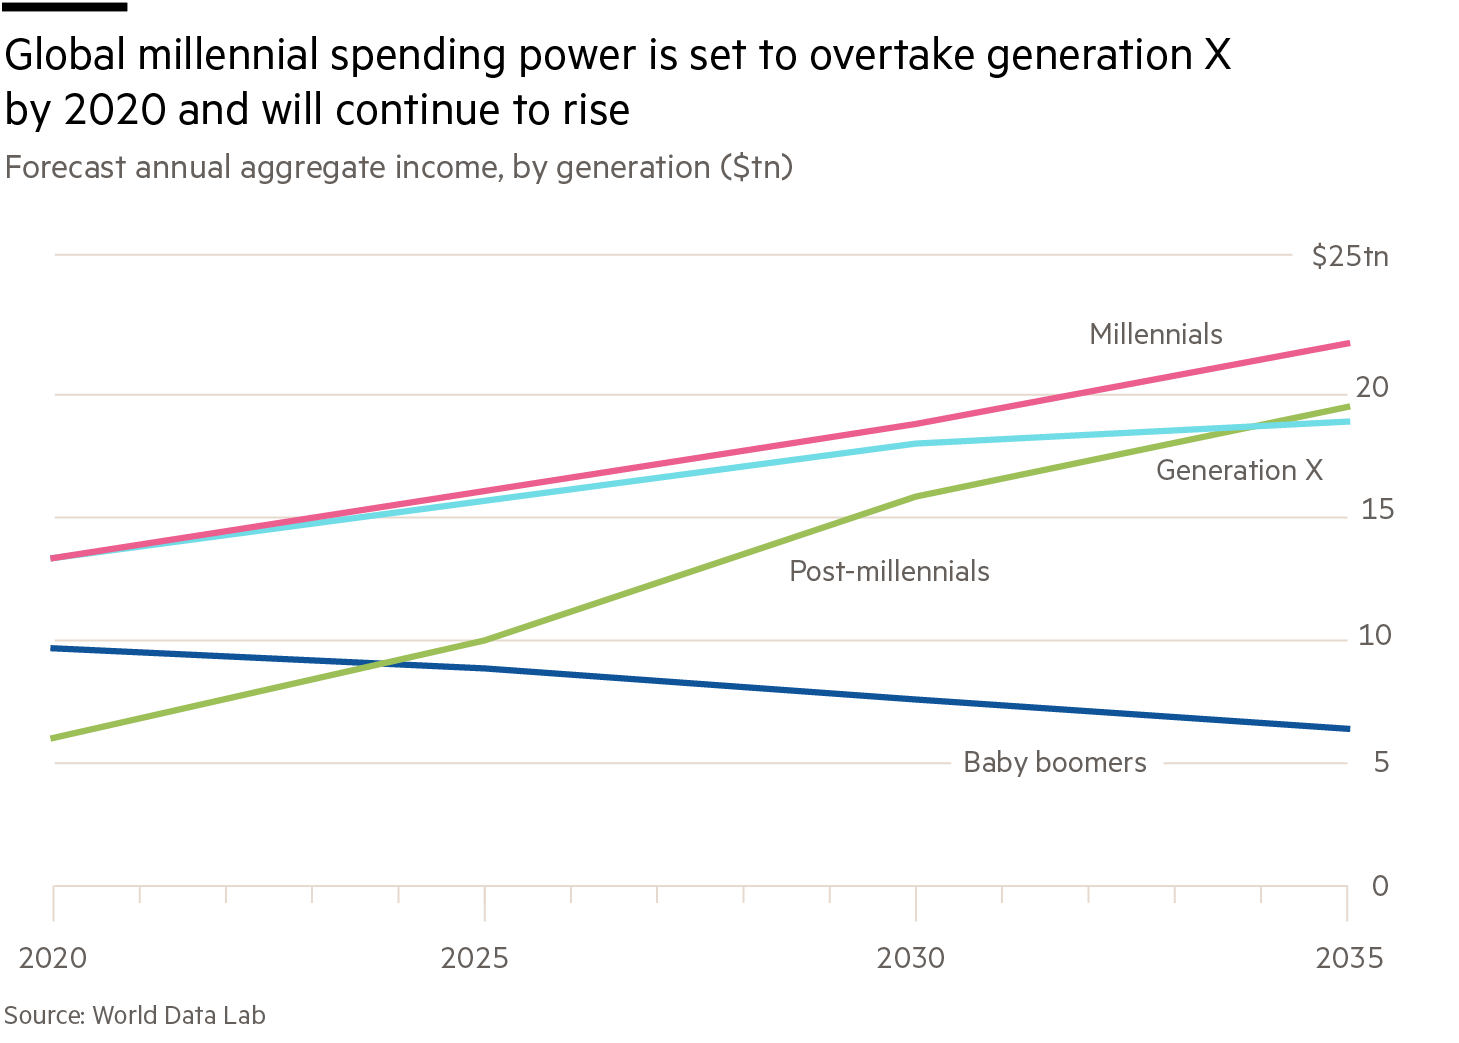 Chart showing predicted millennial income in the future